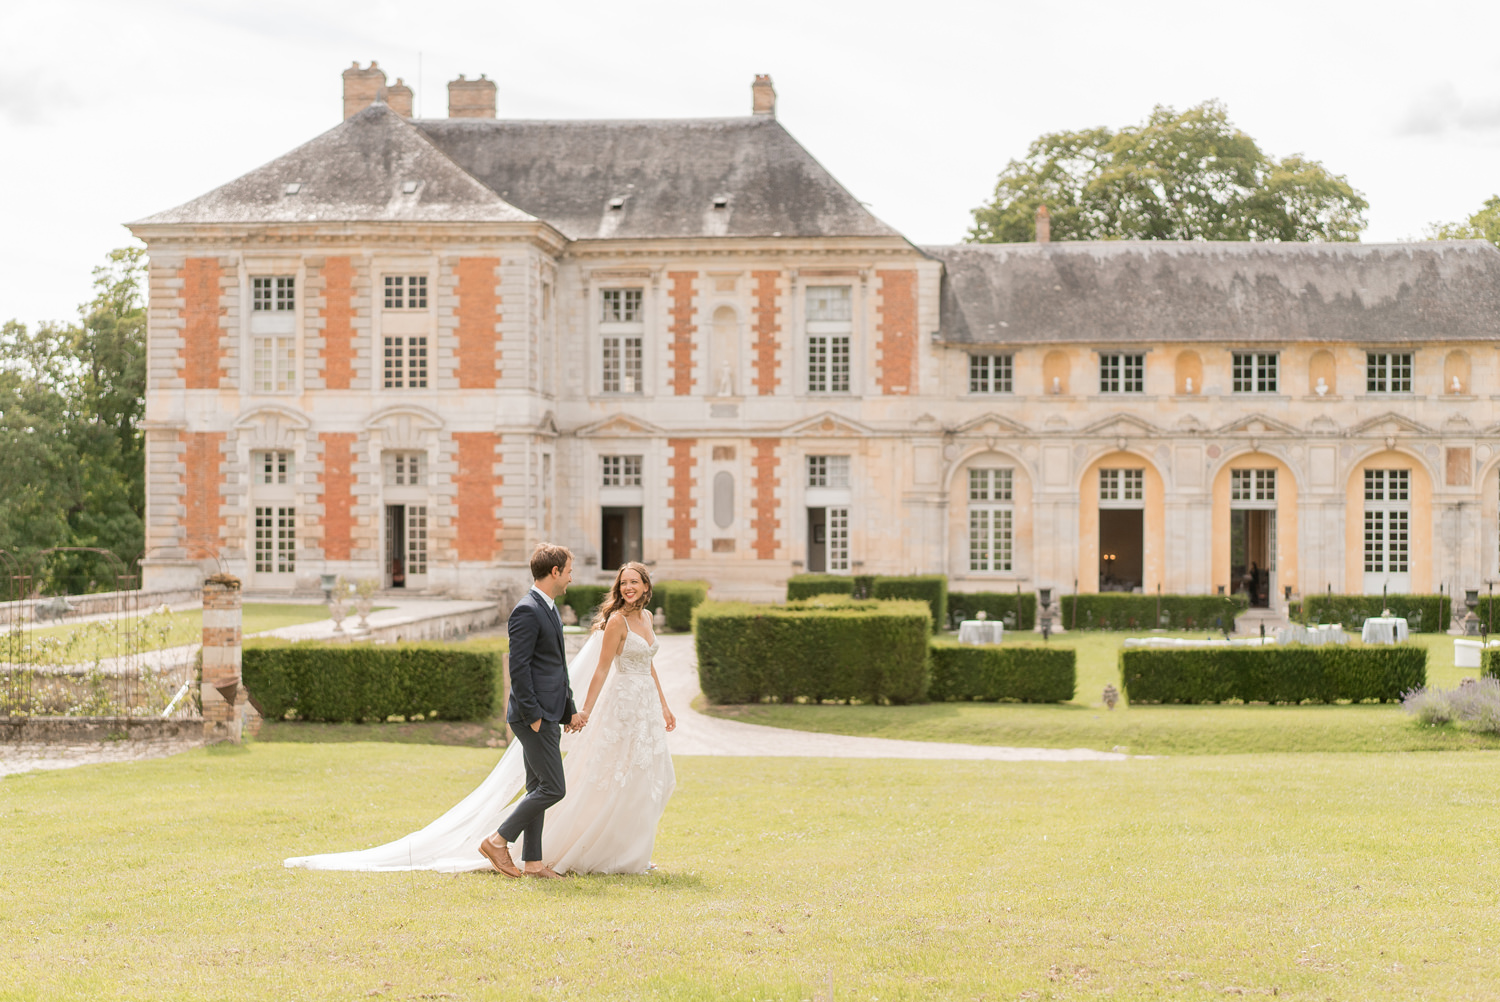 chateau de vallery bride and groom walking together